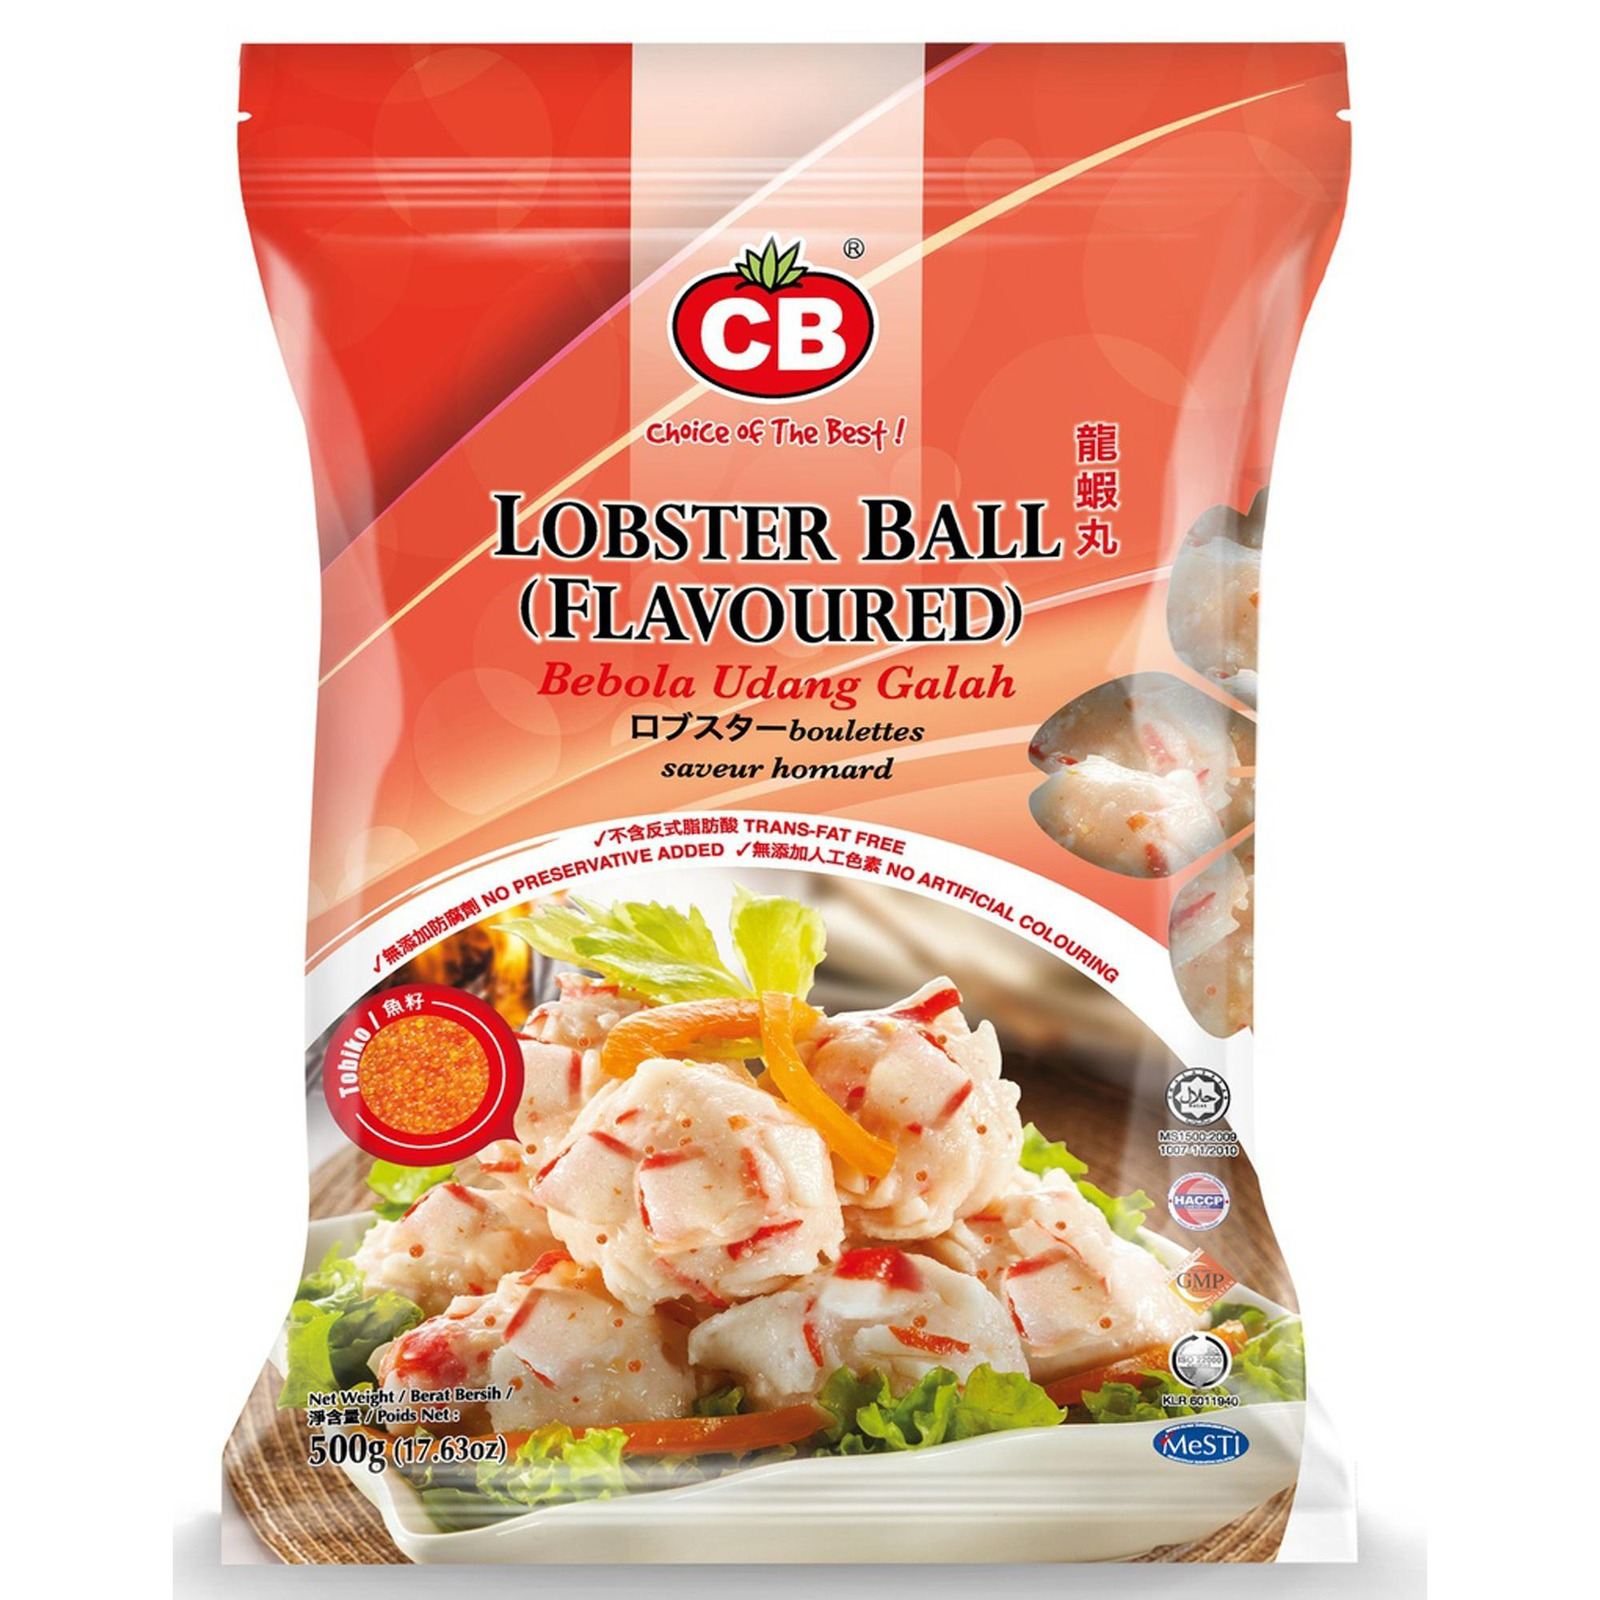 CB Lobster Ball (Flavoured) 19Pcs